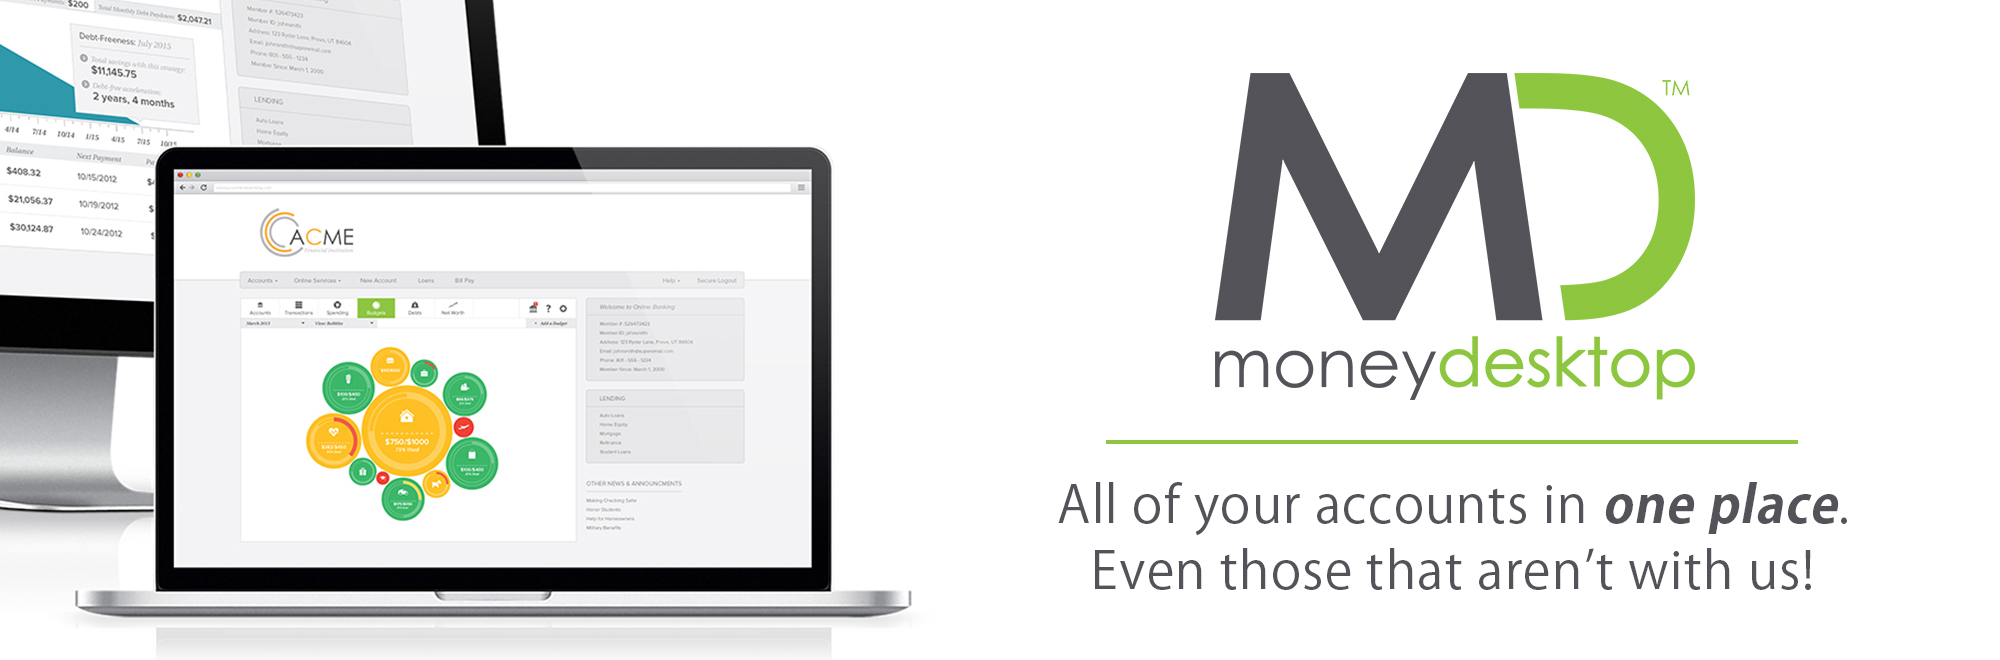 All of your accounts in one place with MoneyDesktop